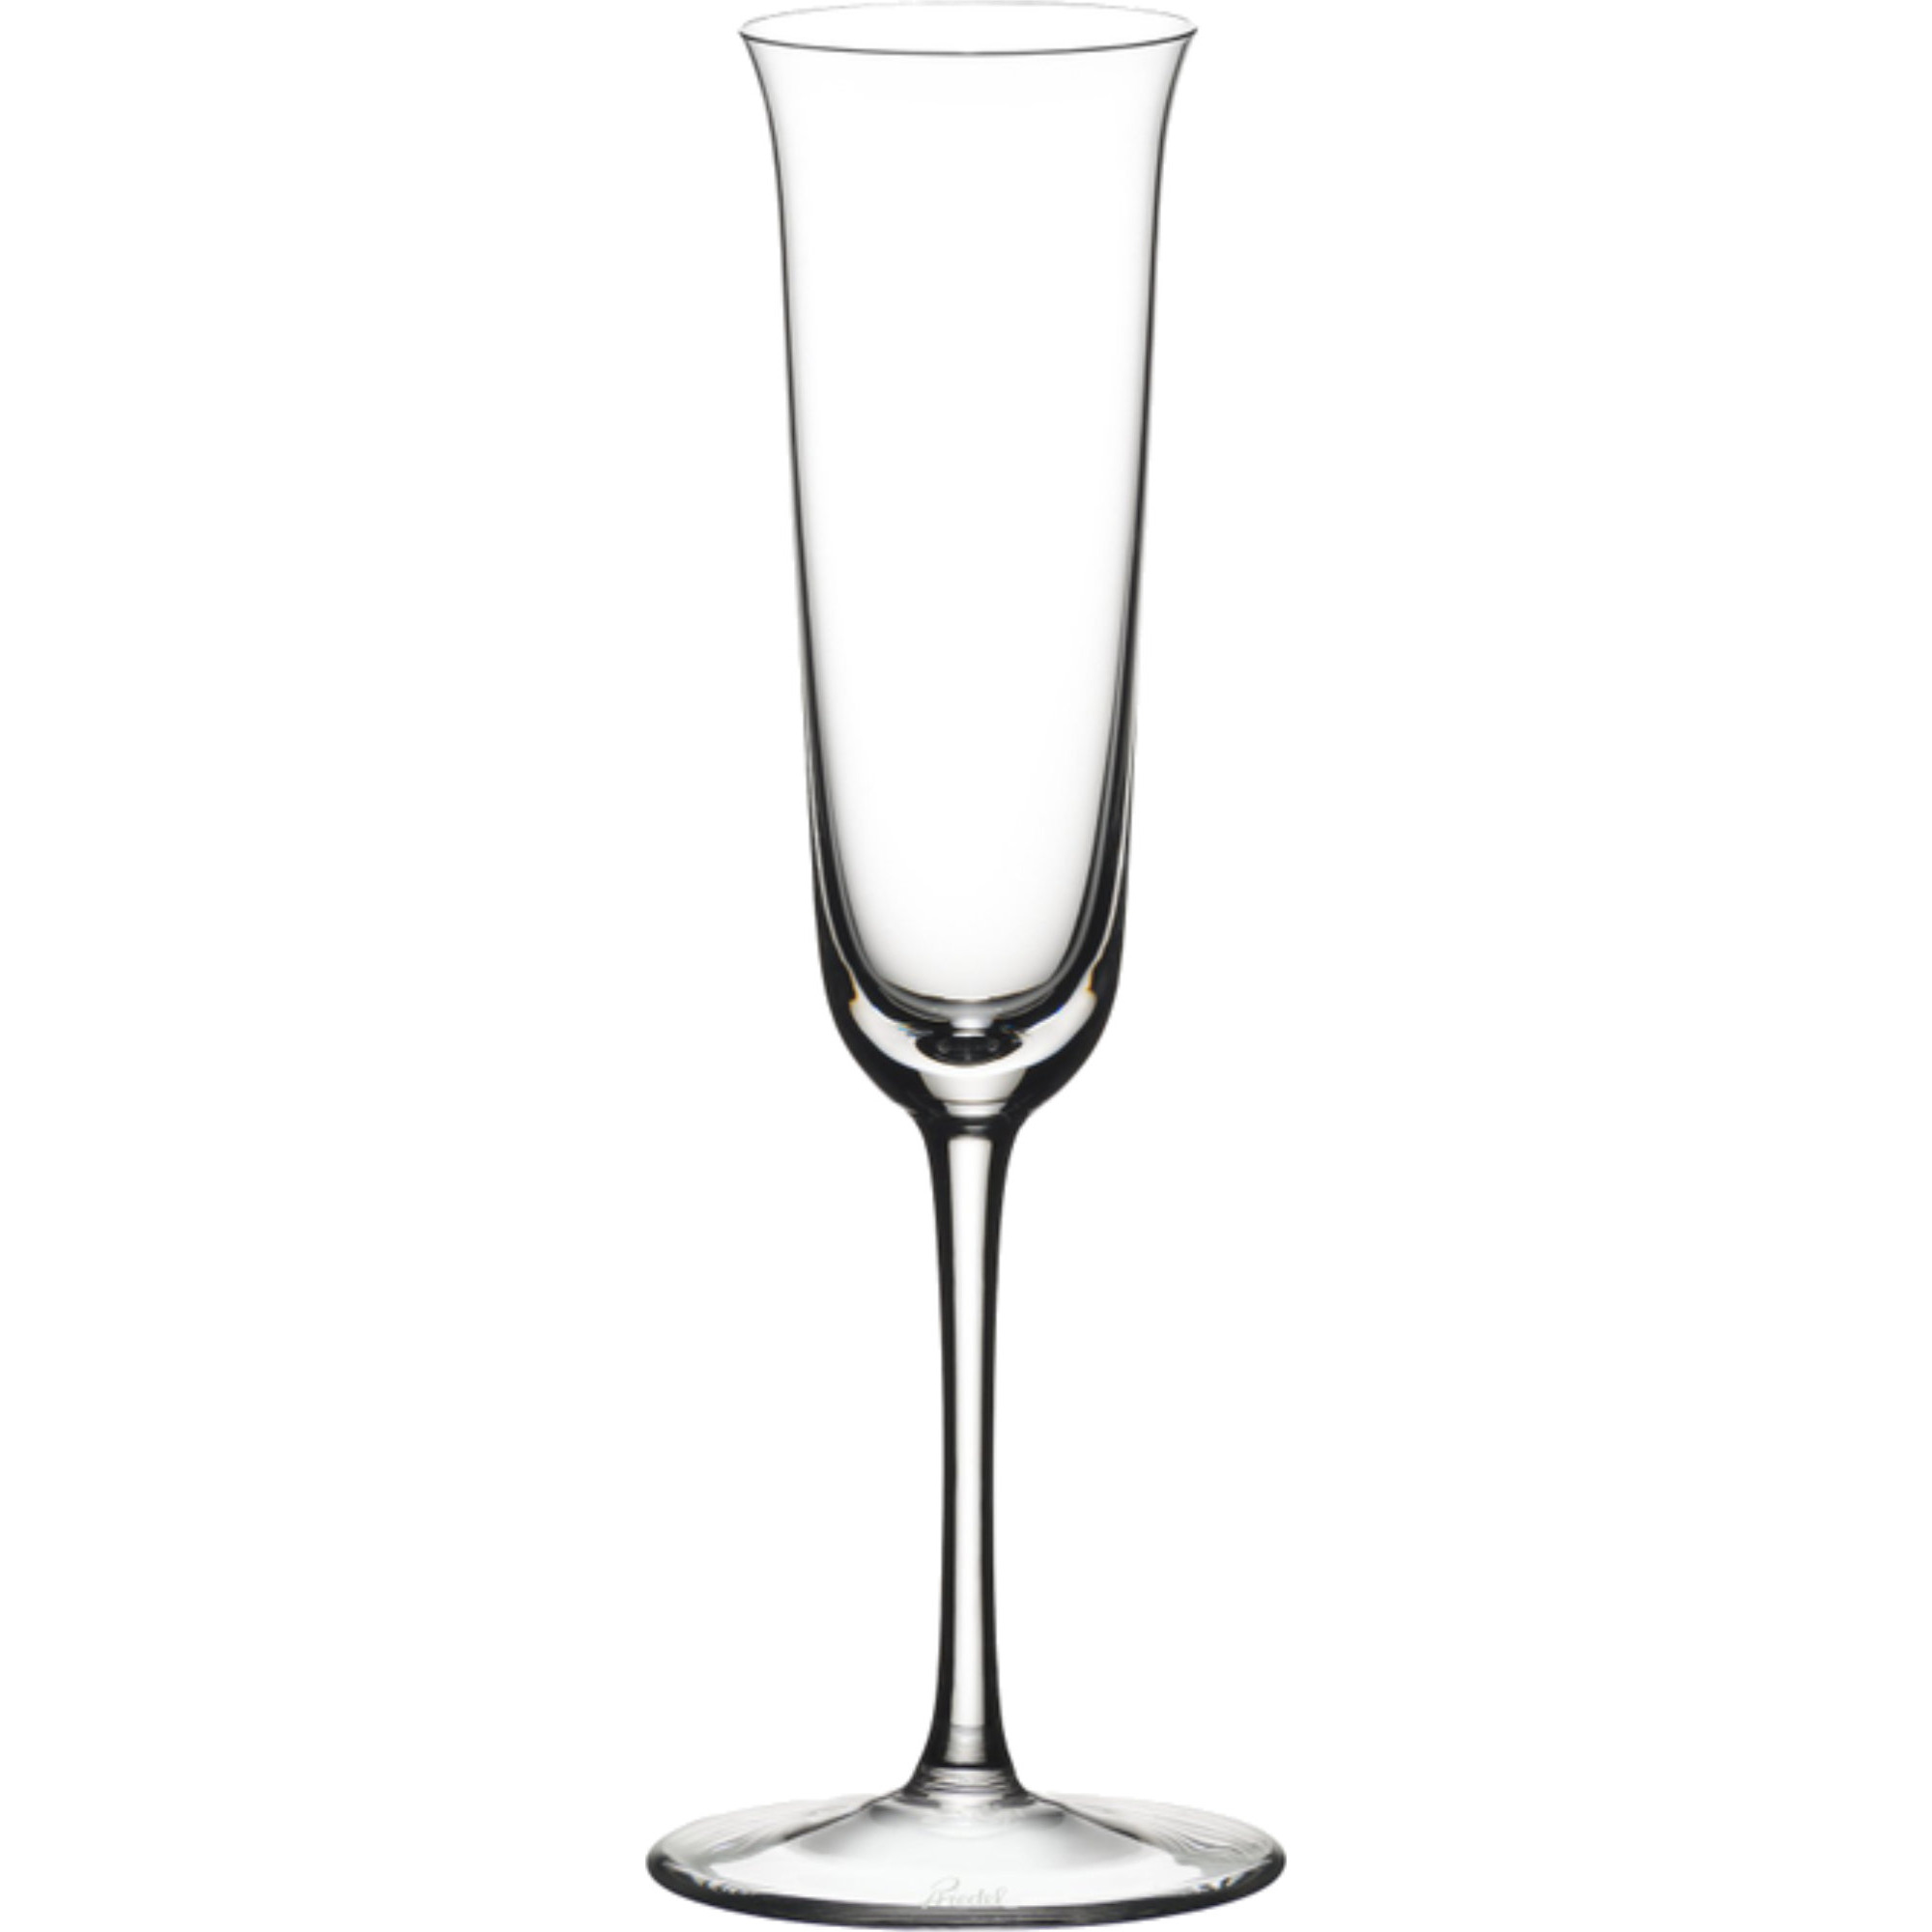 Riedel Sommelier Grappa Snapsglas 11 cl